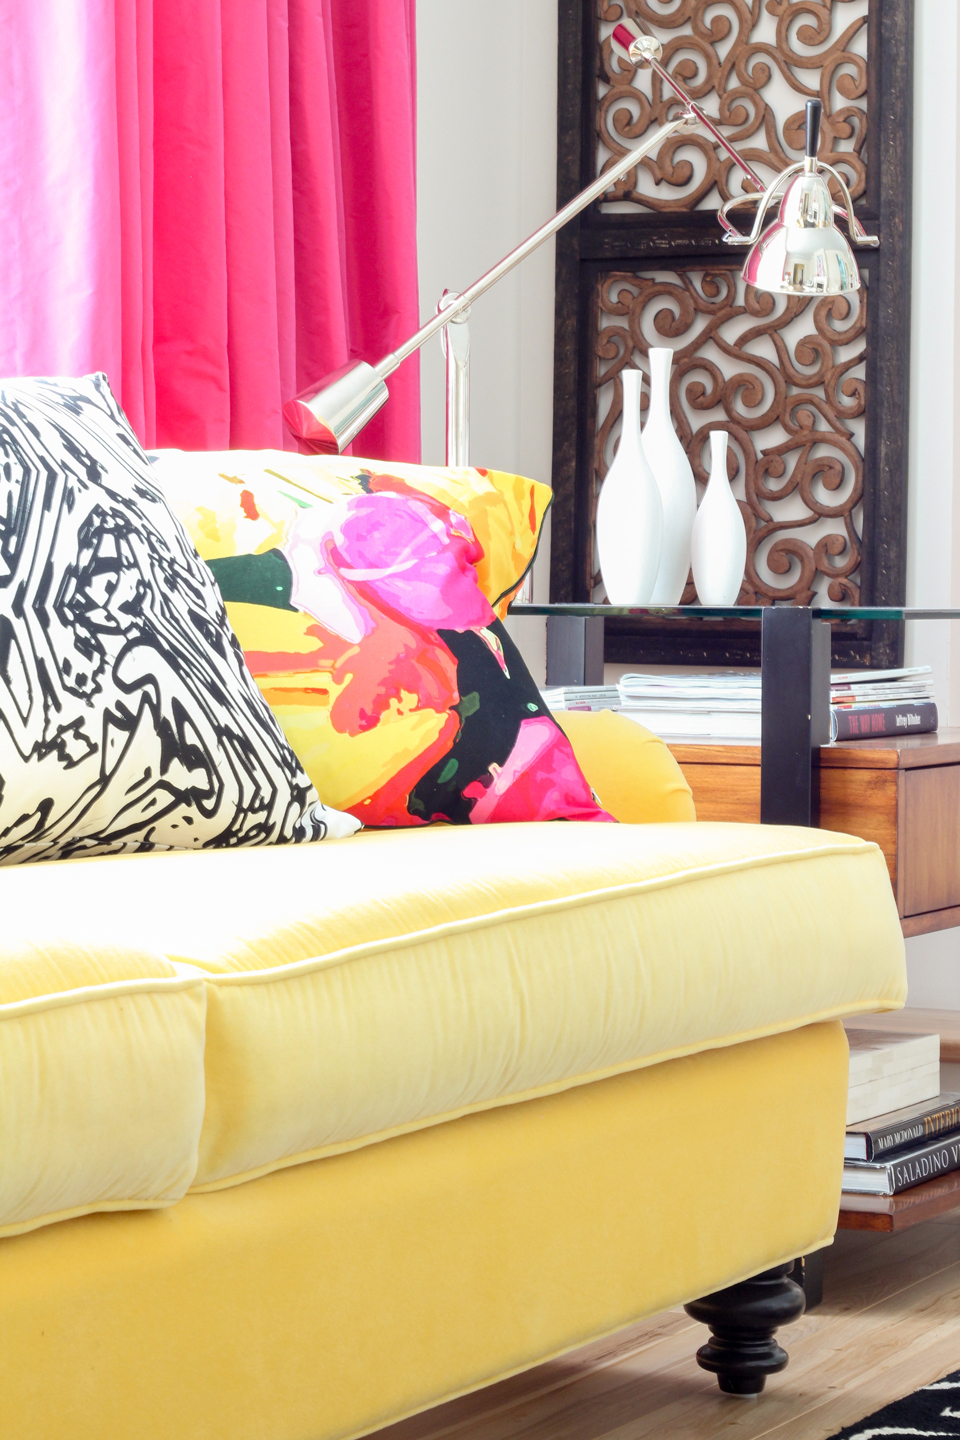 A close-up of a yellow couch, pink curtains, & floral pillow